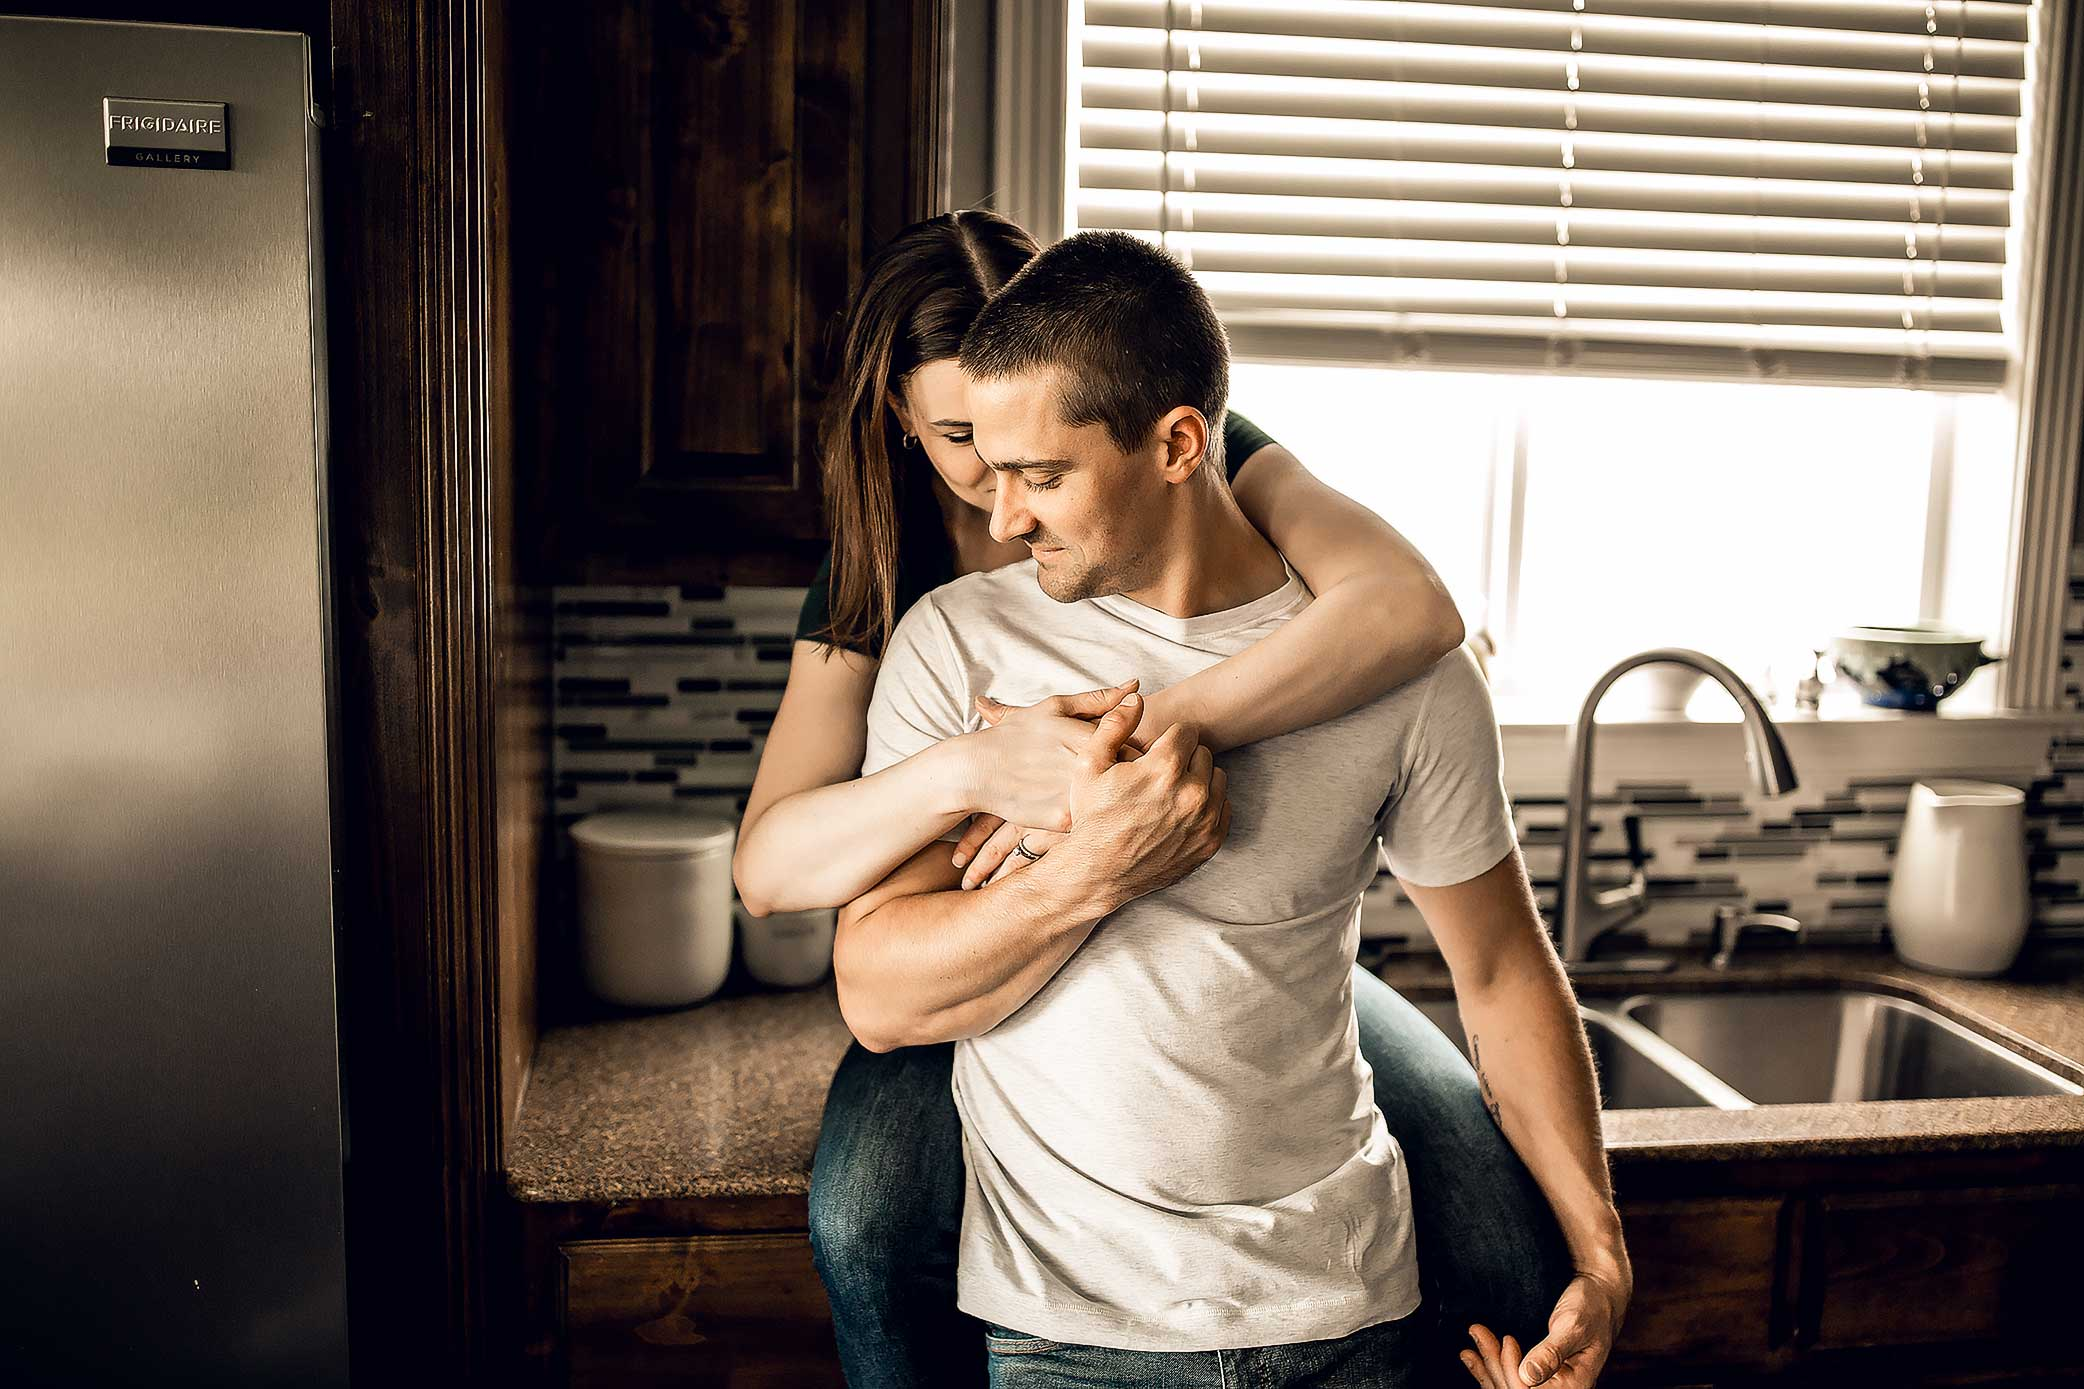 shelby-schiller-photography-lifestyle-home-couples-session-south-college-station-13.jpg